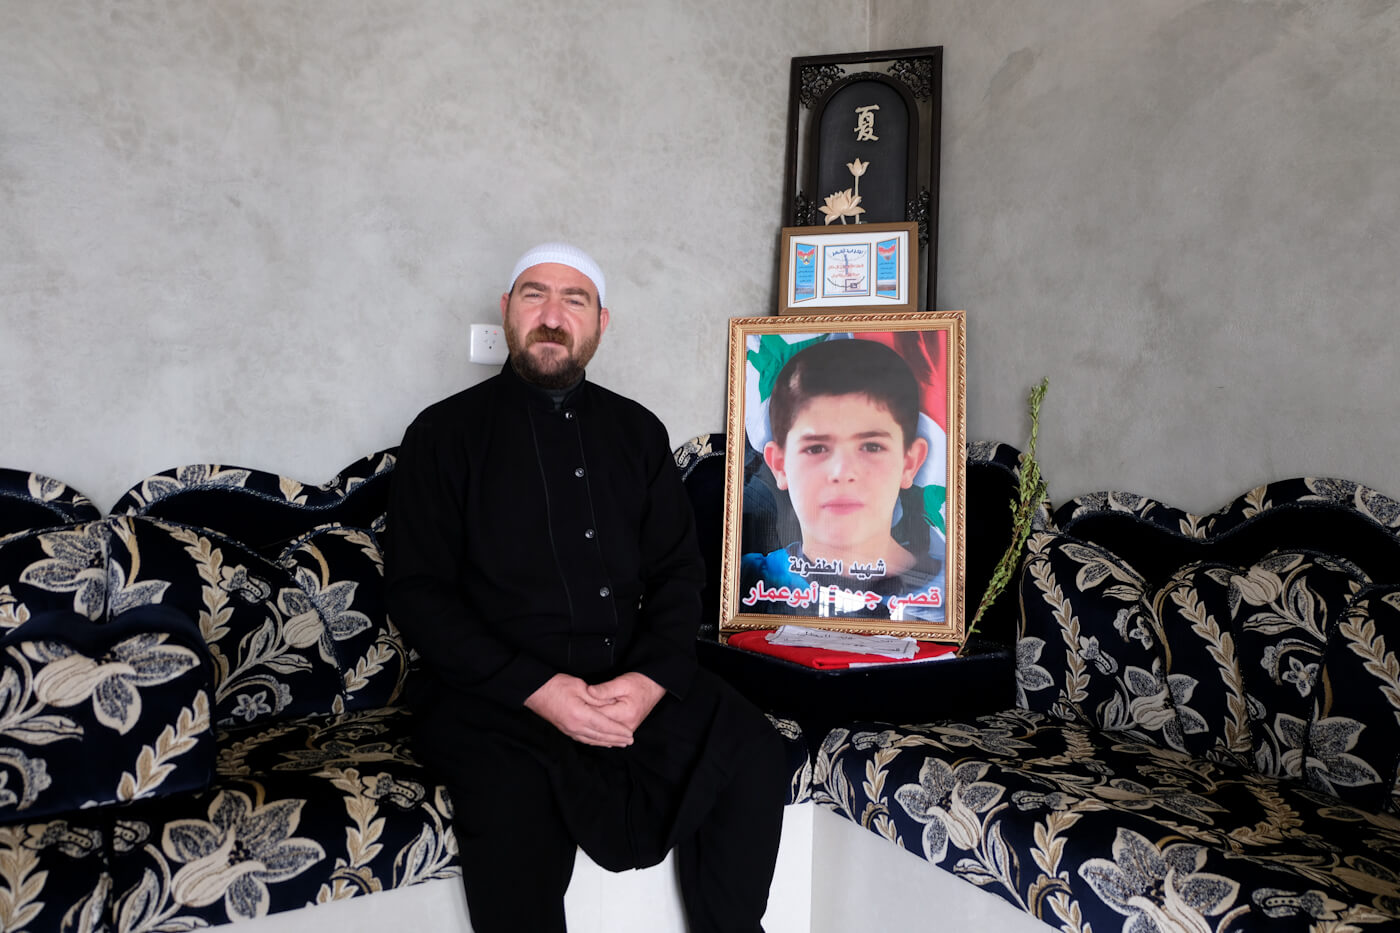 Jawdat Abo Ammar next to the photo of his martyred son, Qussai, fatally injured during the SAA rescue operation in Tilal Al-Safa. Photo | Vanessa Beeley